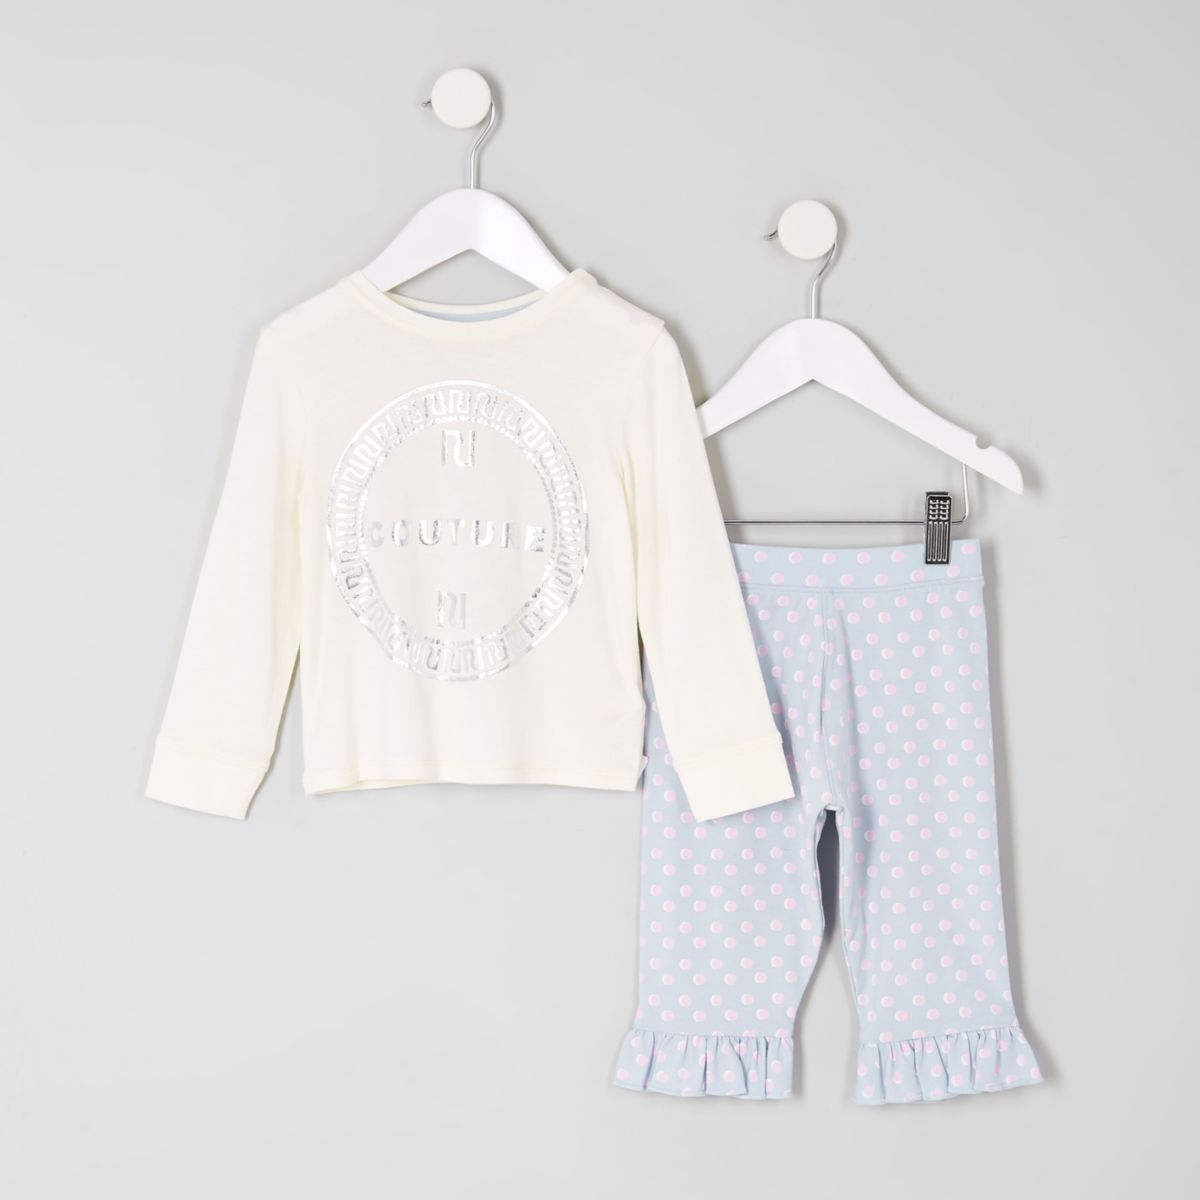 Mini girls white 'couture' T-shirt outfit